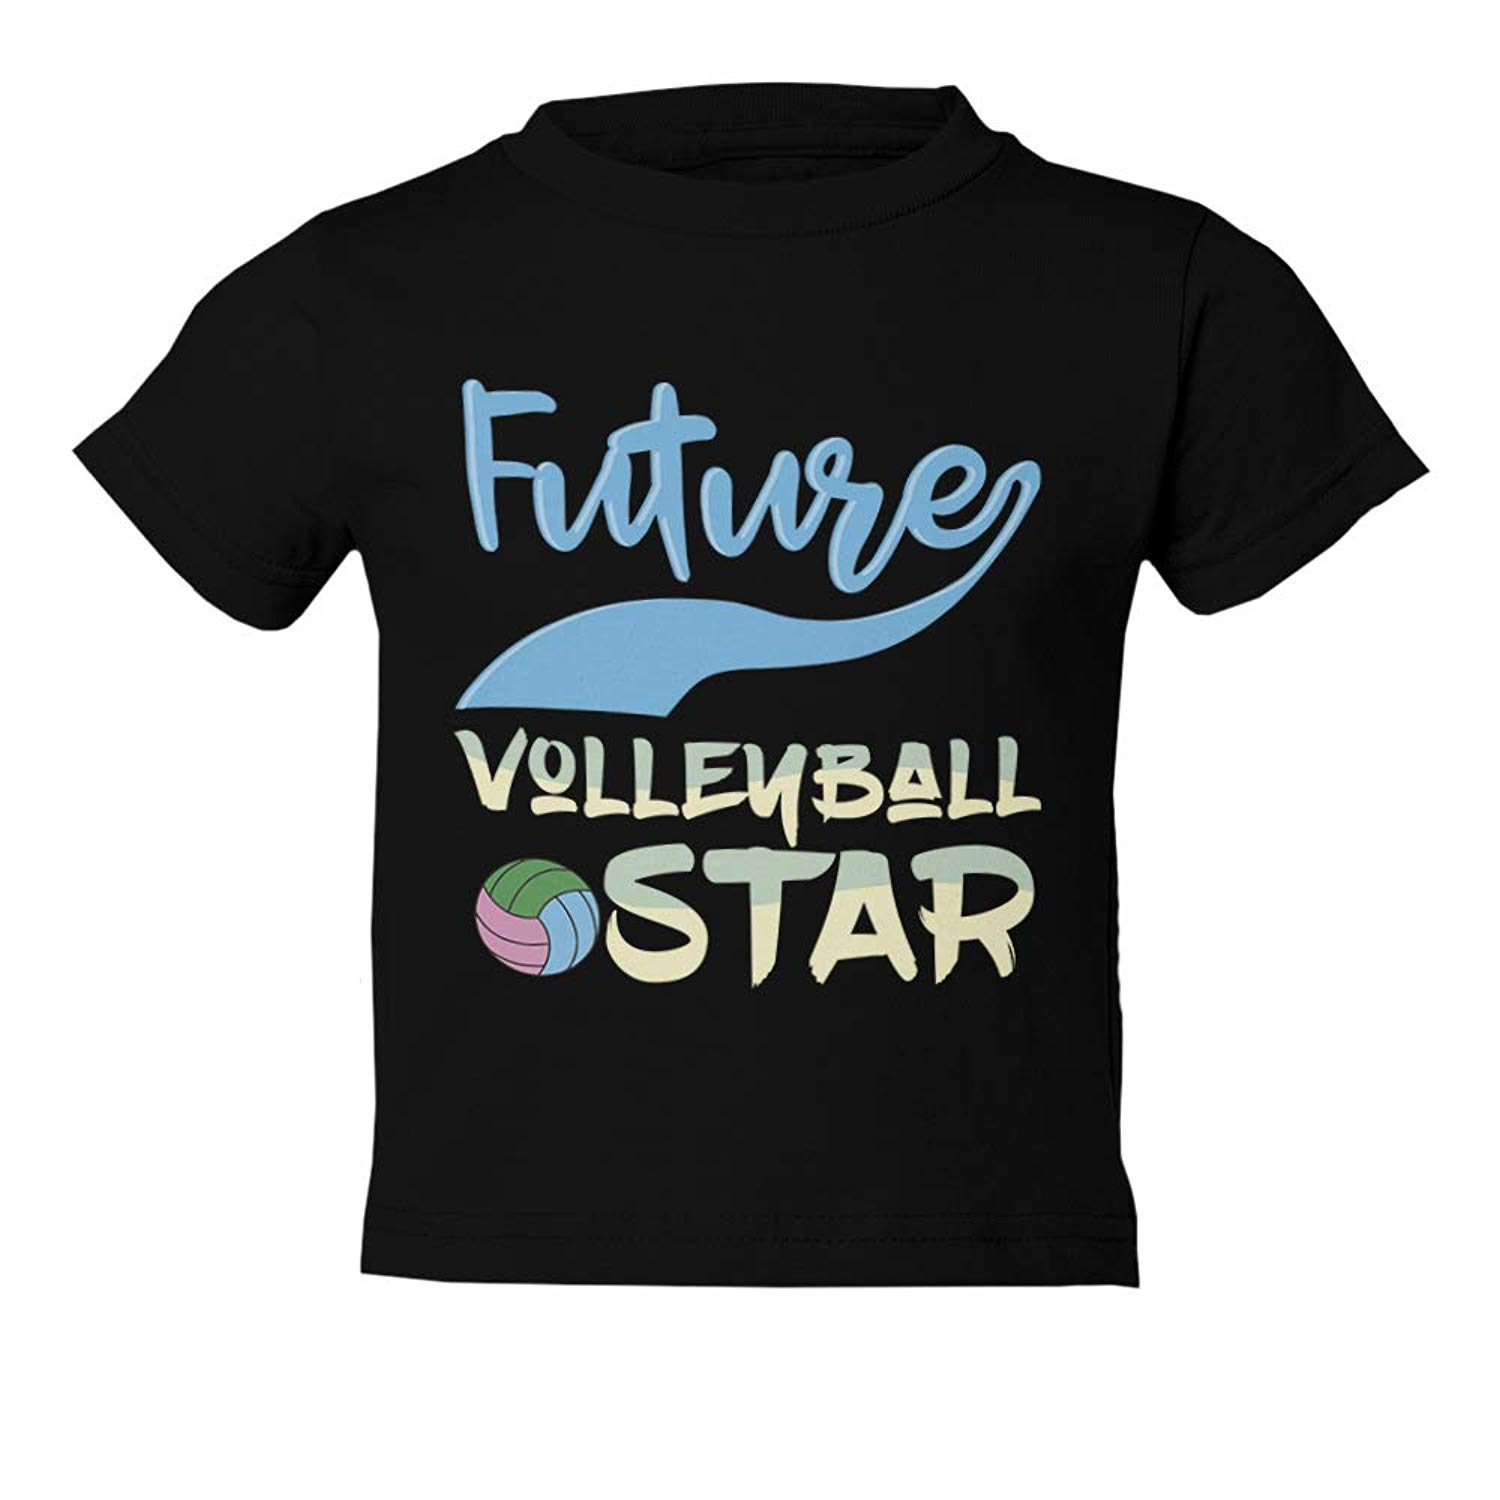 5a256828e Get Quotations · Volleyball Little Star Future Volleyball Star Youth &  Toddler Tee Shirt